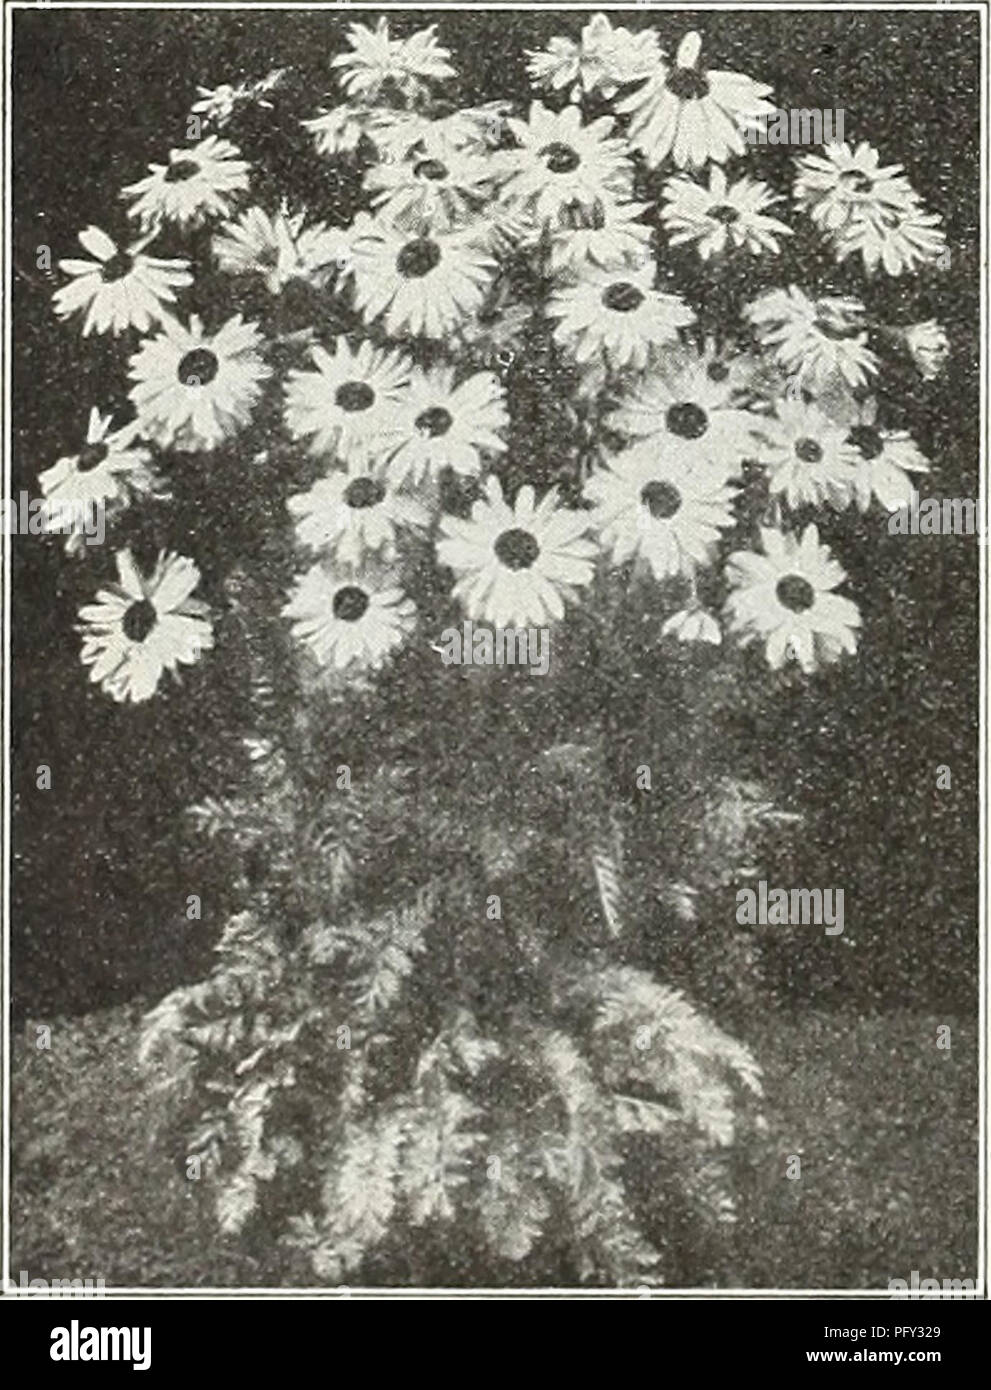 Curries garden annual spring 1931 56th year flowers seeds curries garden annual spring 1931 56th year flowers seeds catalogs bulbs plants seeds catalogs vegetables seeds izmirmasajfo